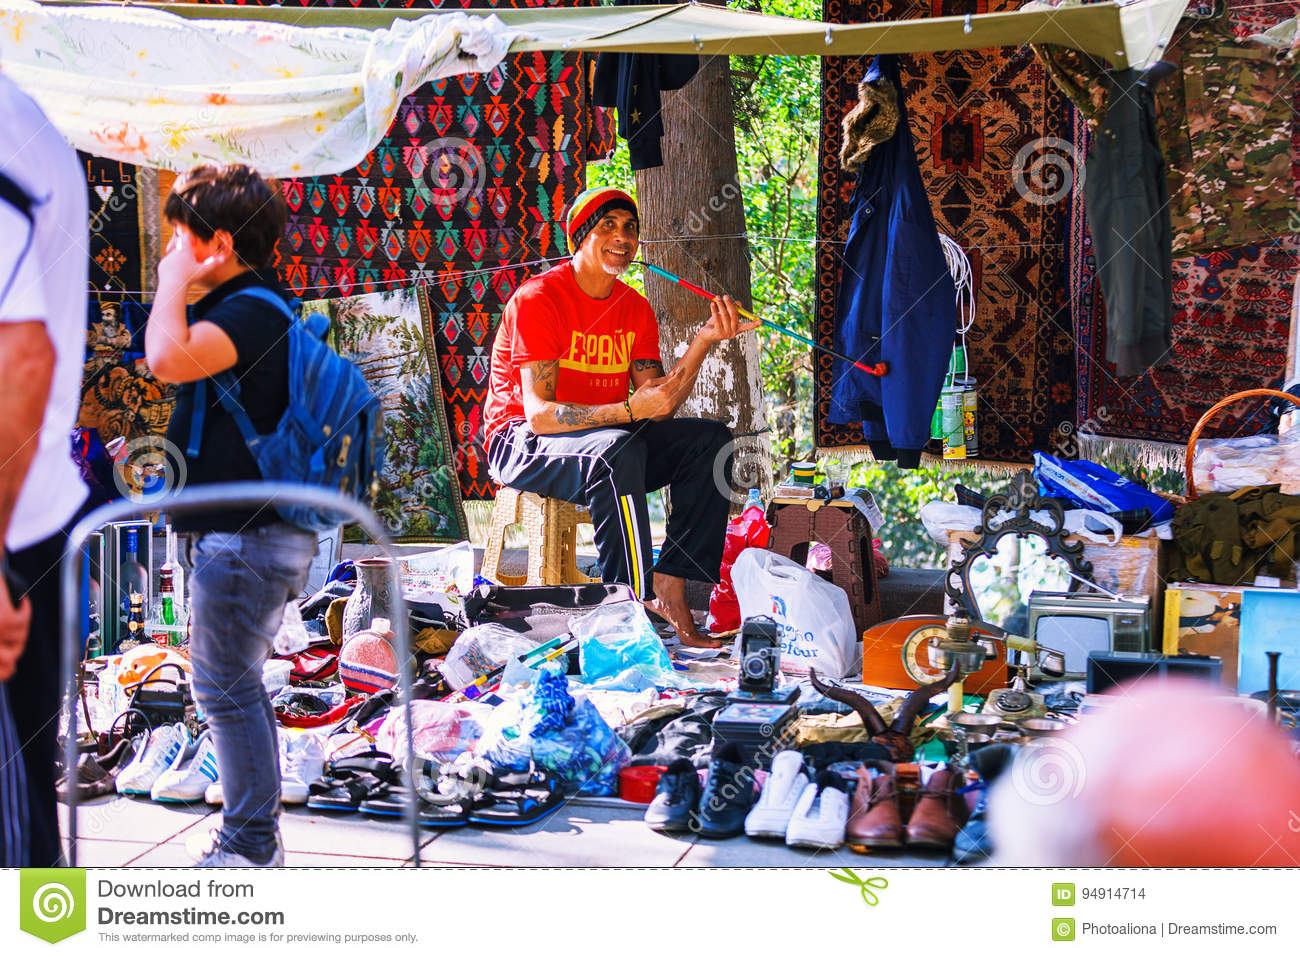 Georgia Tbilisi Flea Market Stock Photos Georgia Tbilisi: 08 October, 2016: An Unidentified